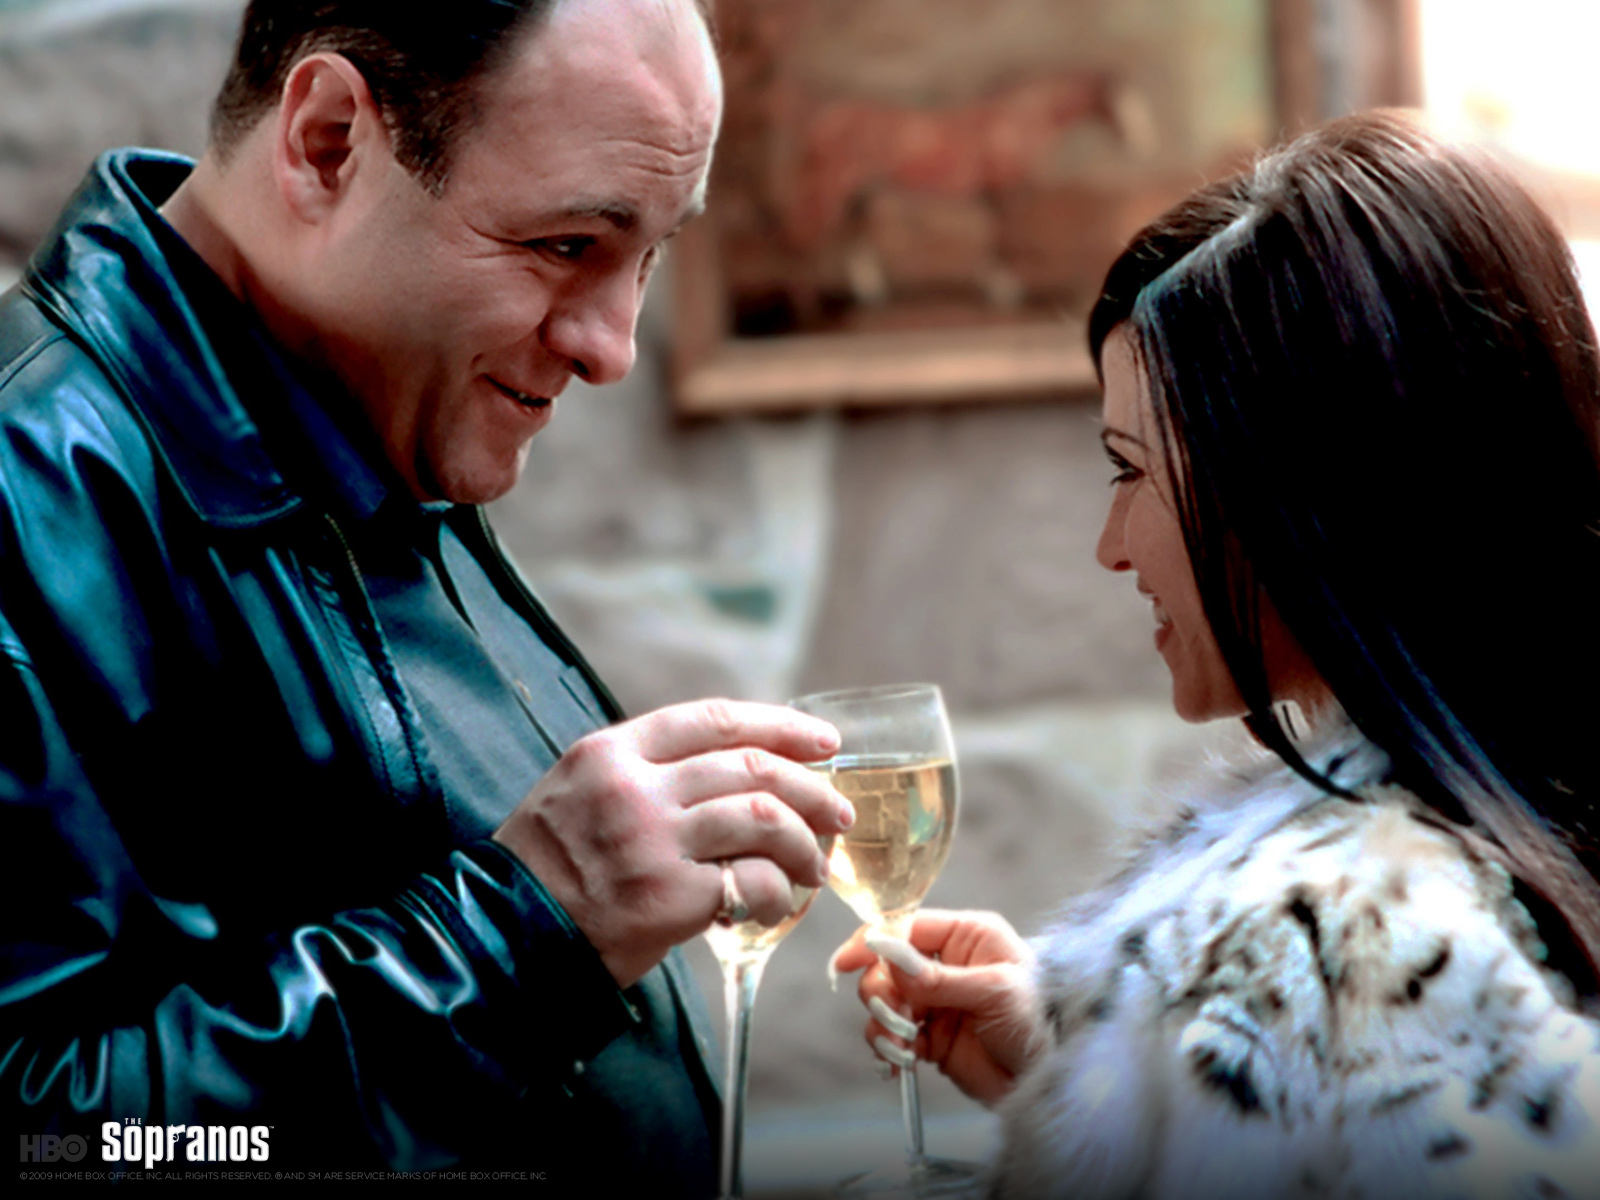 How I Met Your Mother Wallpaper Quotes Yonomeaburro Foto The Sopranos Wallpaper